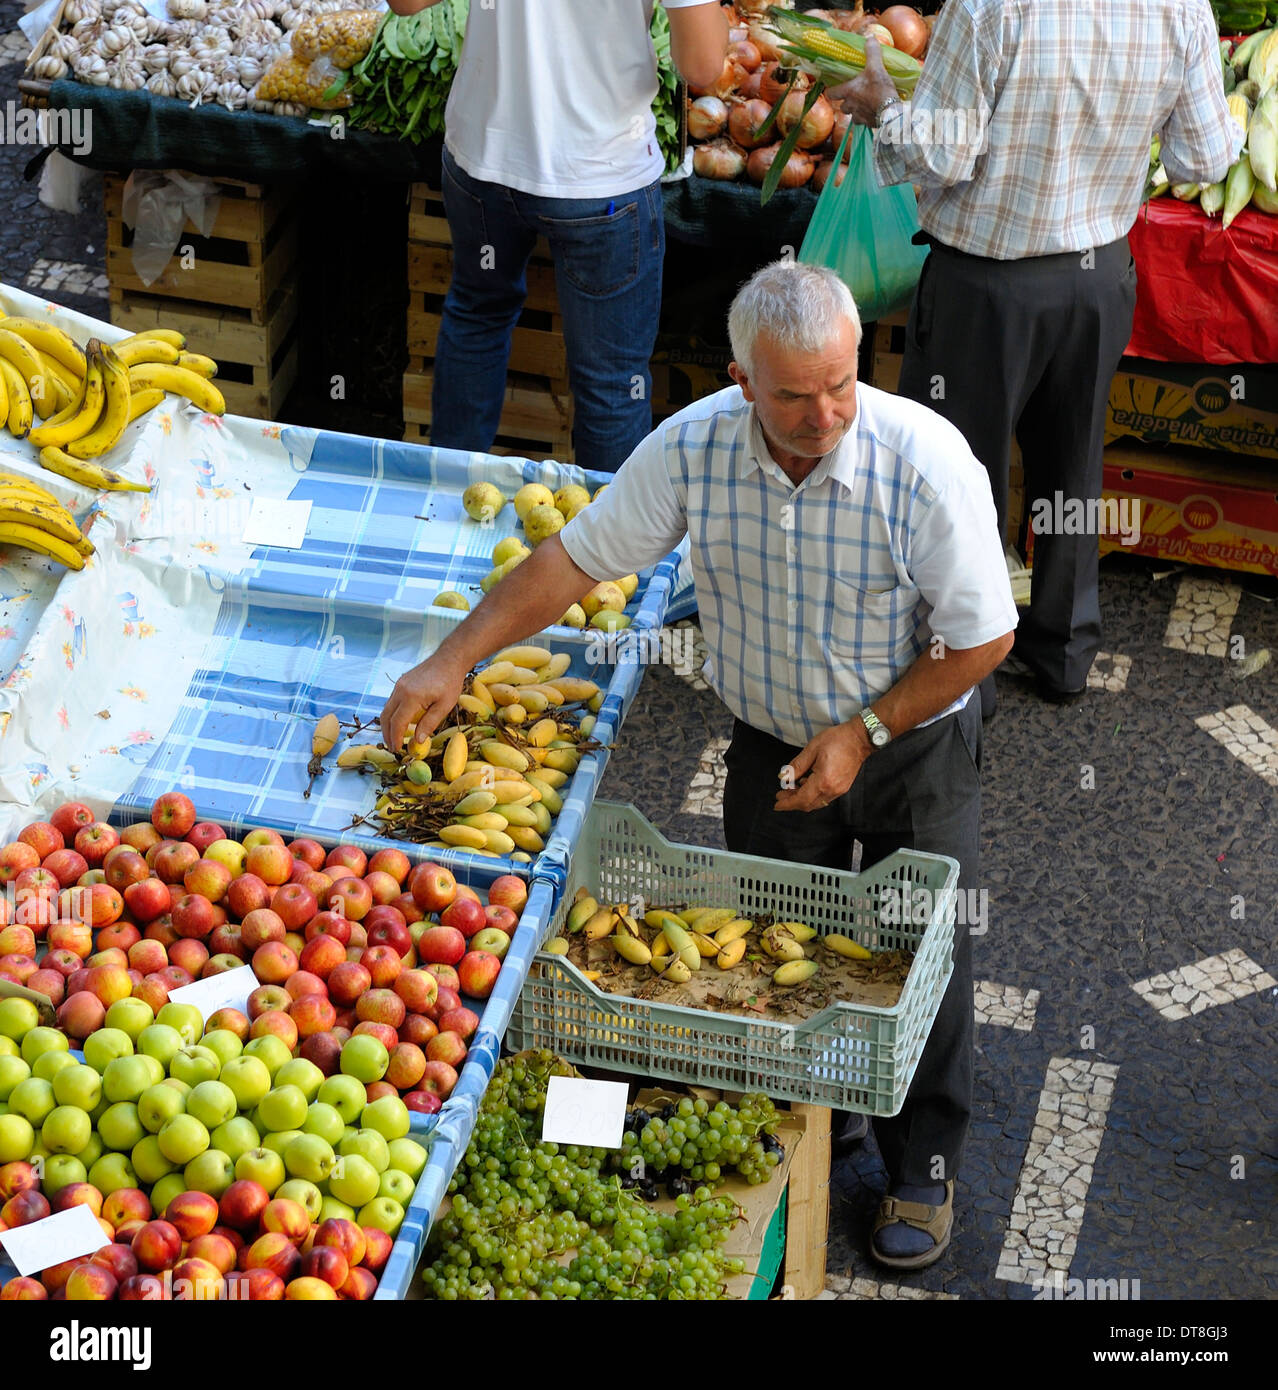 Funchal Madeira The indoor fruit and vegetable market Mercado dos Lavradores A market trader tidying his stall - Stock Image